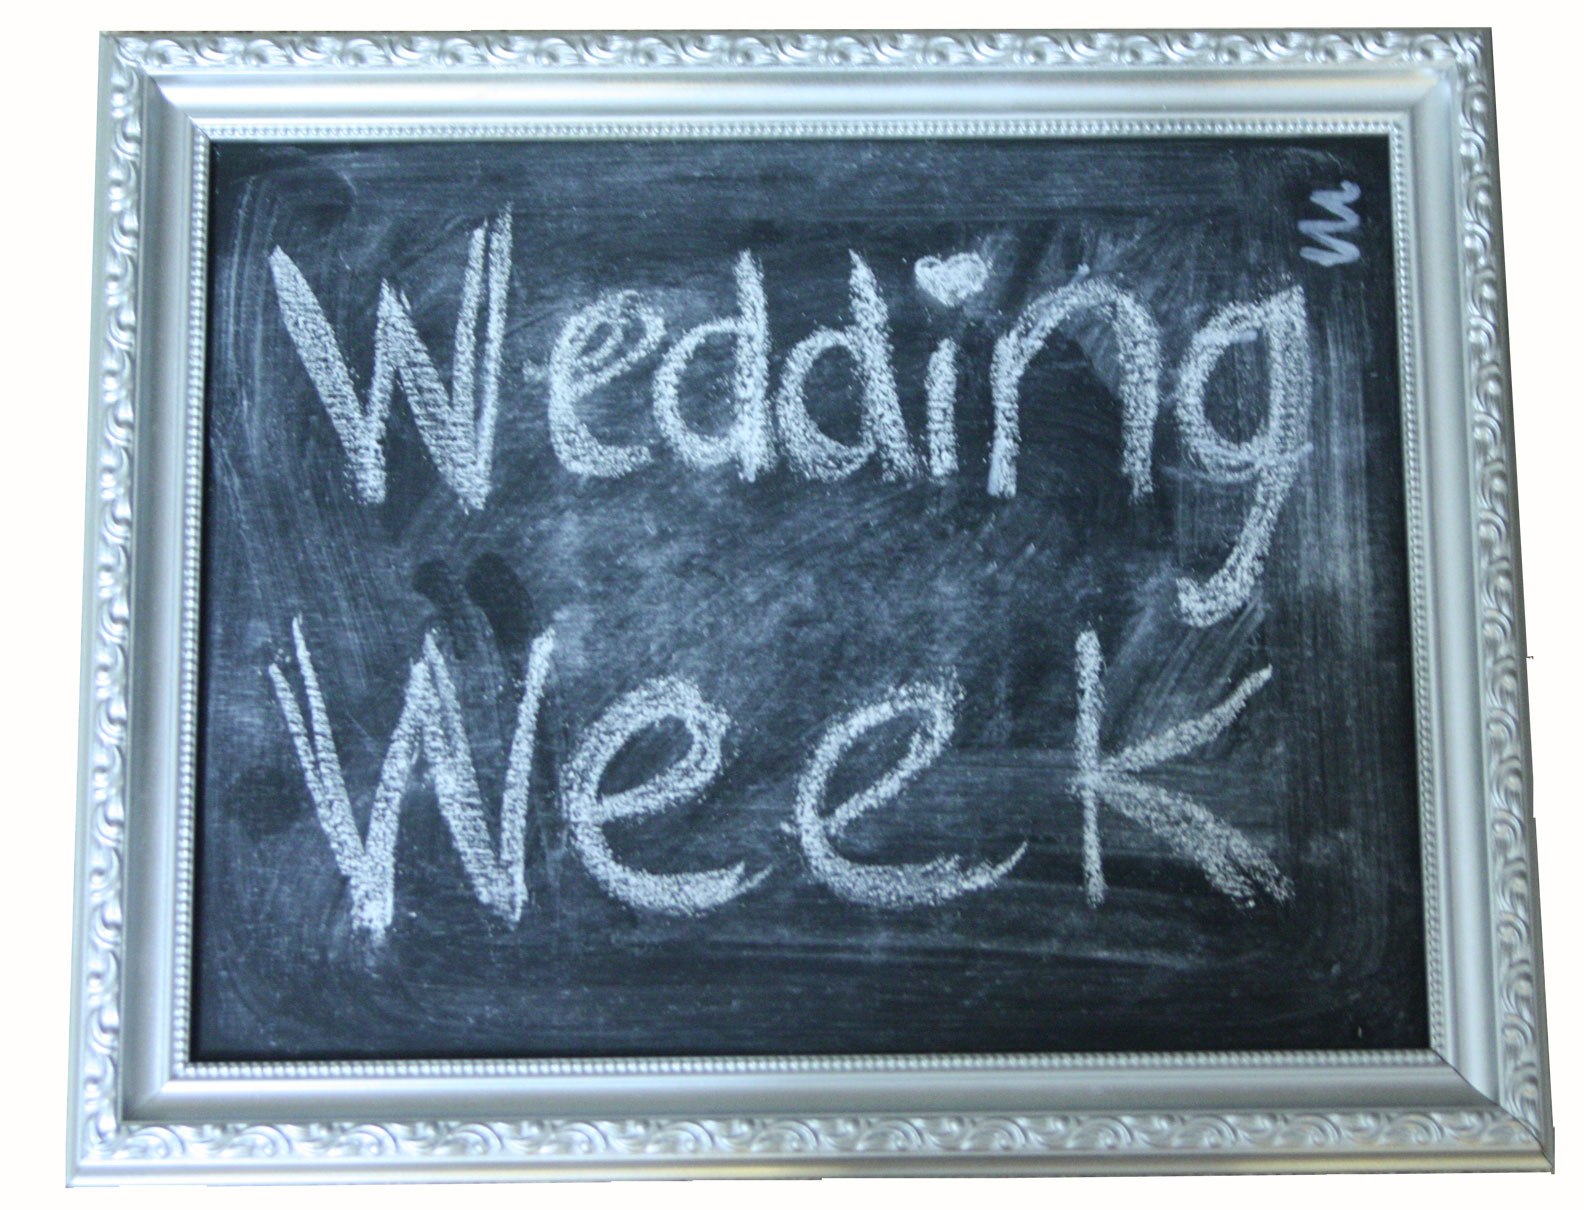 Diy Wedding Chalkboard Place Cards Welcome To The Second Day Of My Week If I Didn T Make It Clear How Much Love Weddings Yesterday